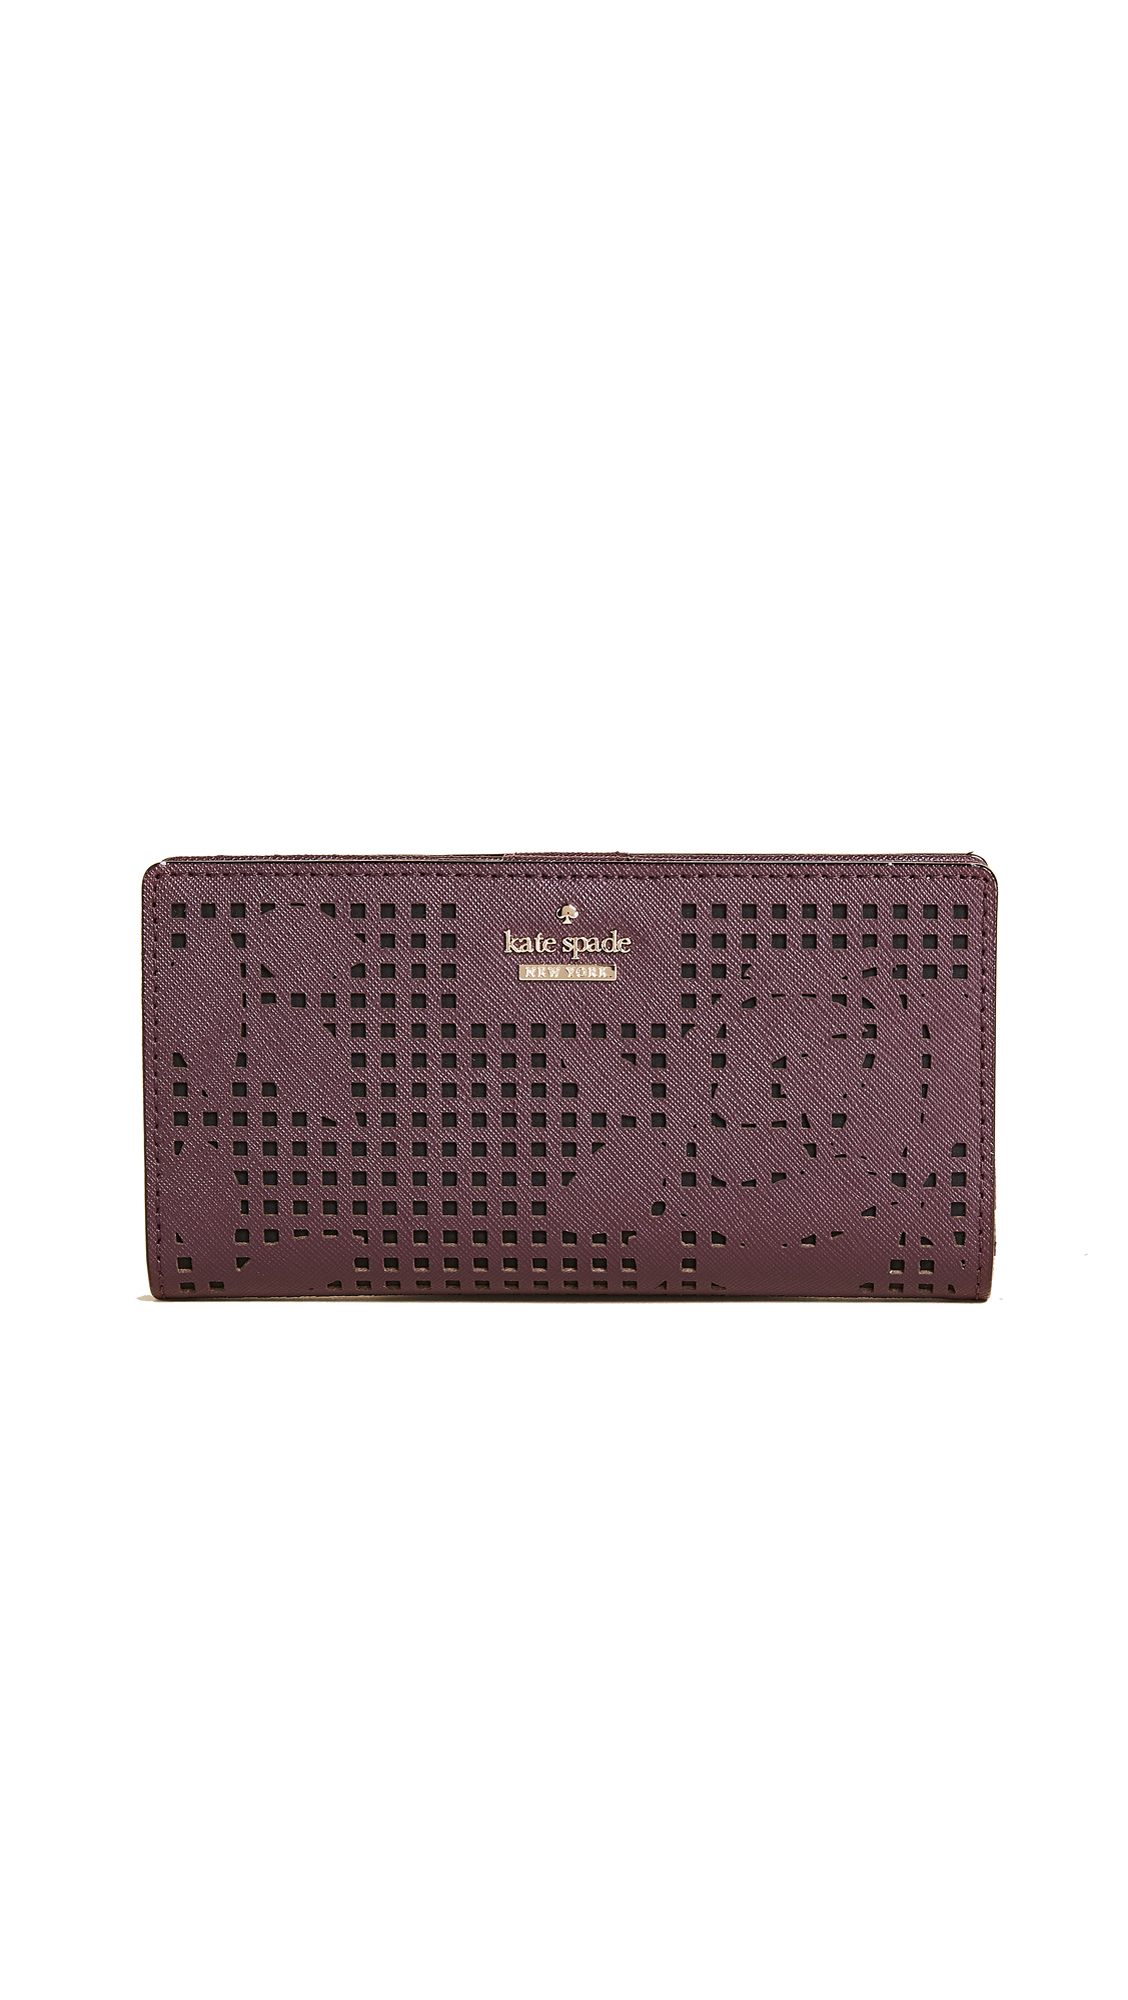 Kate Spade New York Cameron Street Perforated Stacy Wallet - Deep Plum